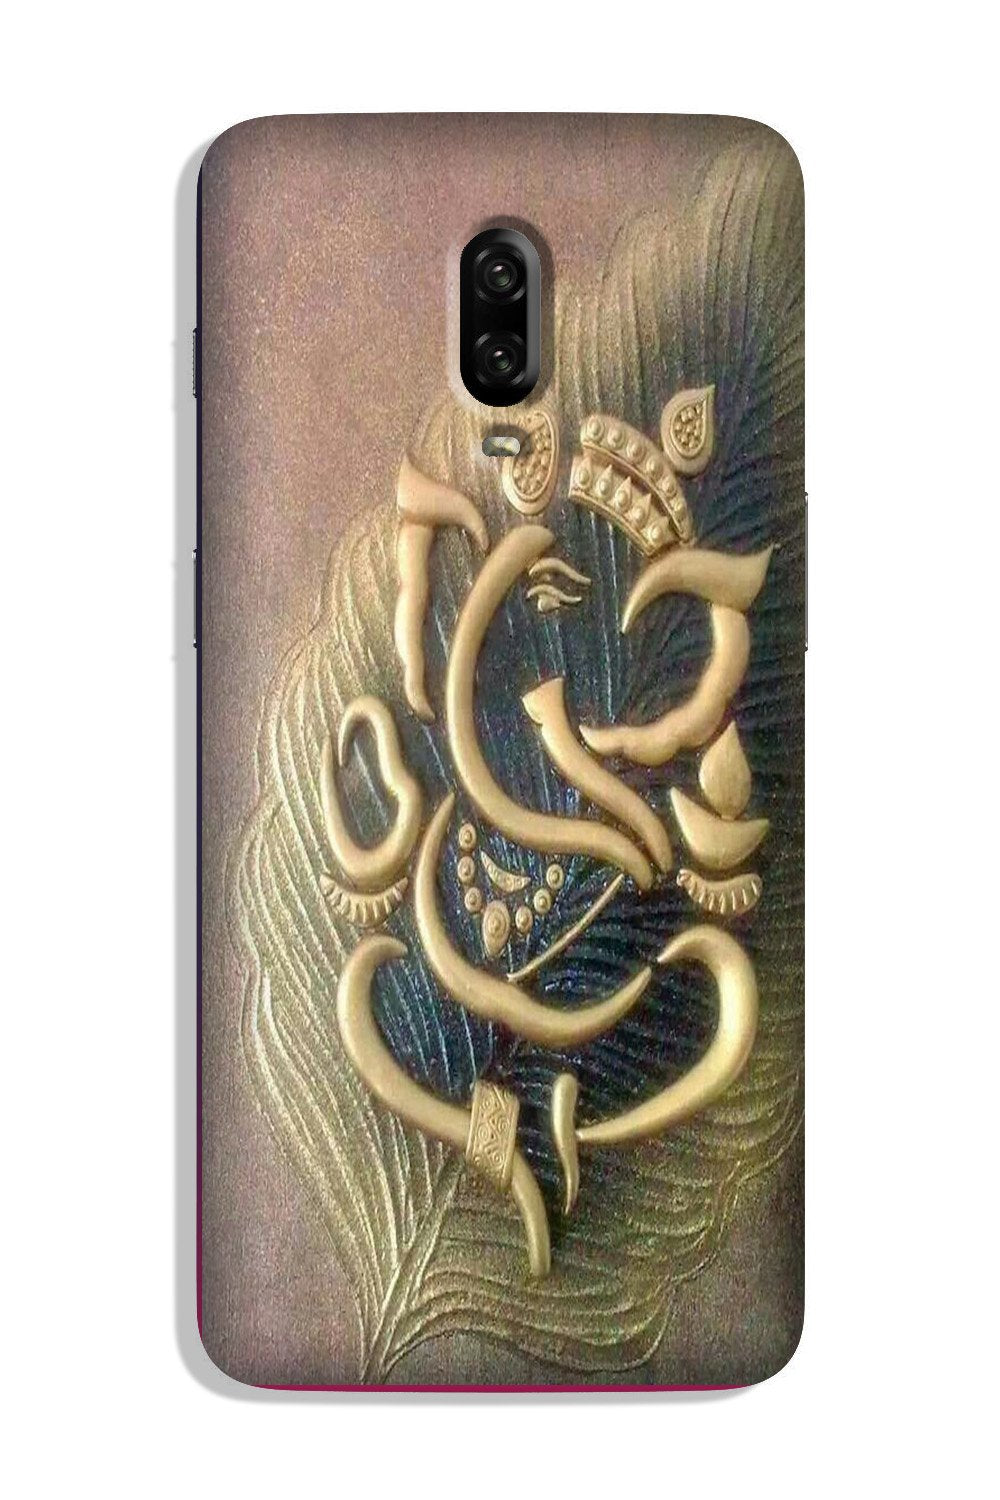 Lord Ganesha Case for OnePlus 7